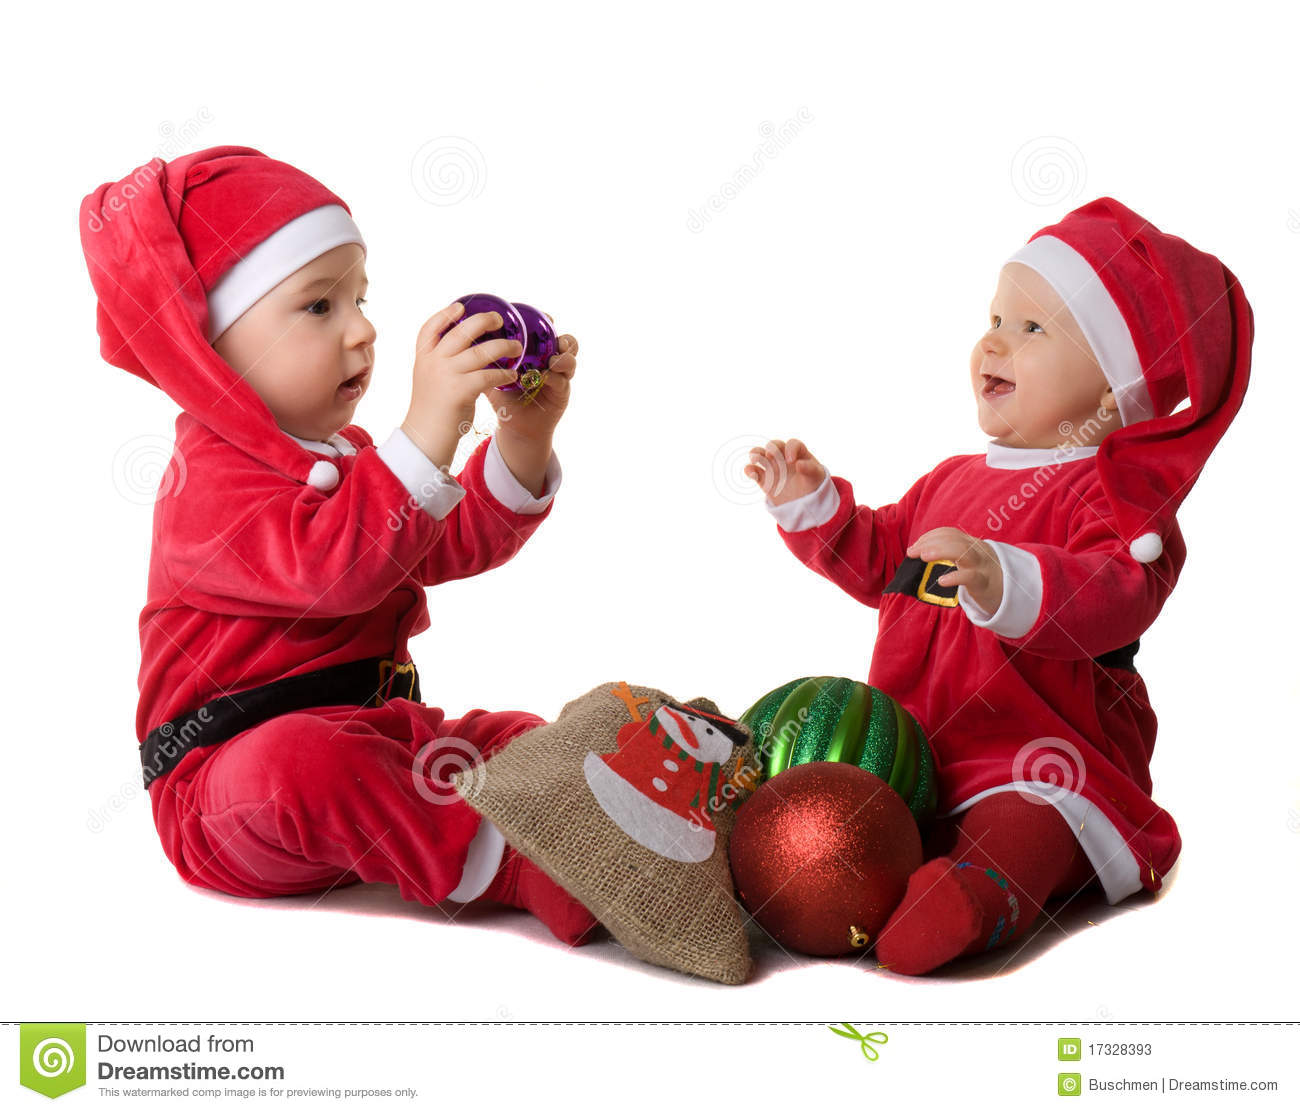 children in the clothes of santa claus cute together - Santa Claus Children